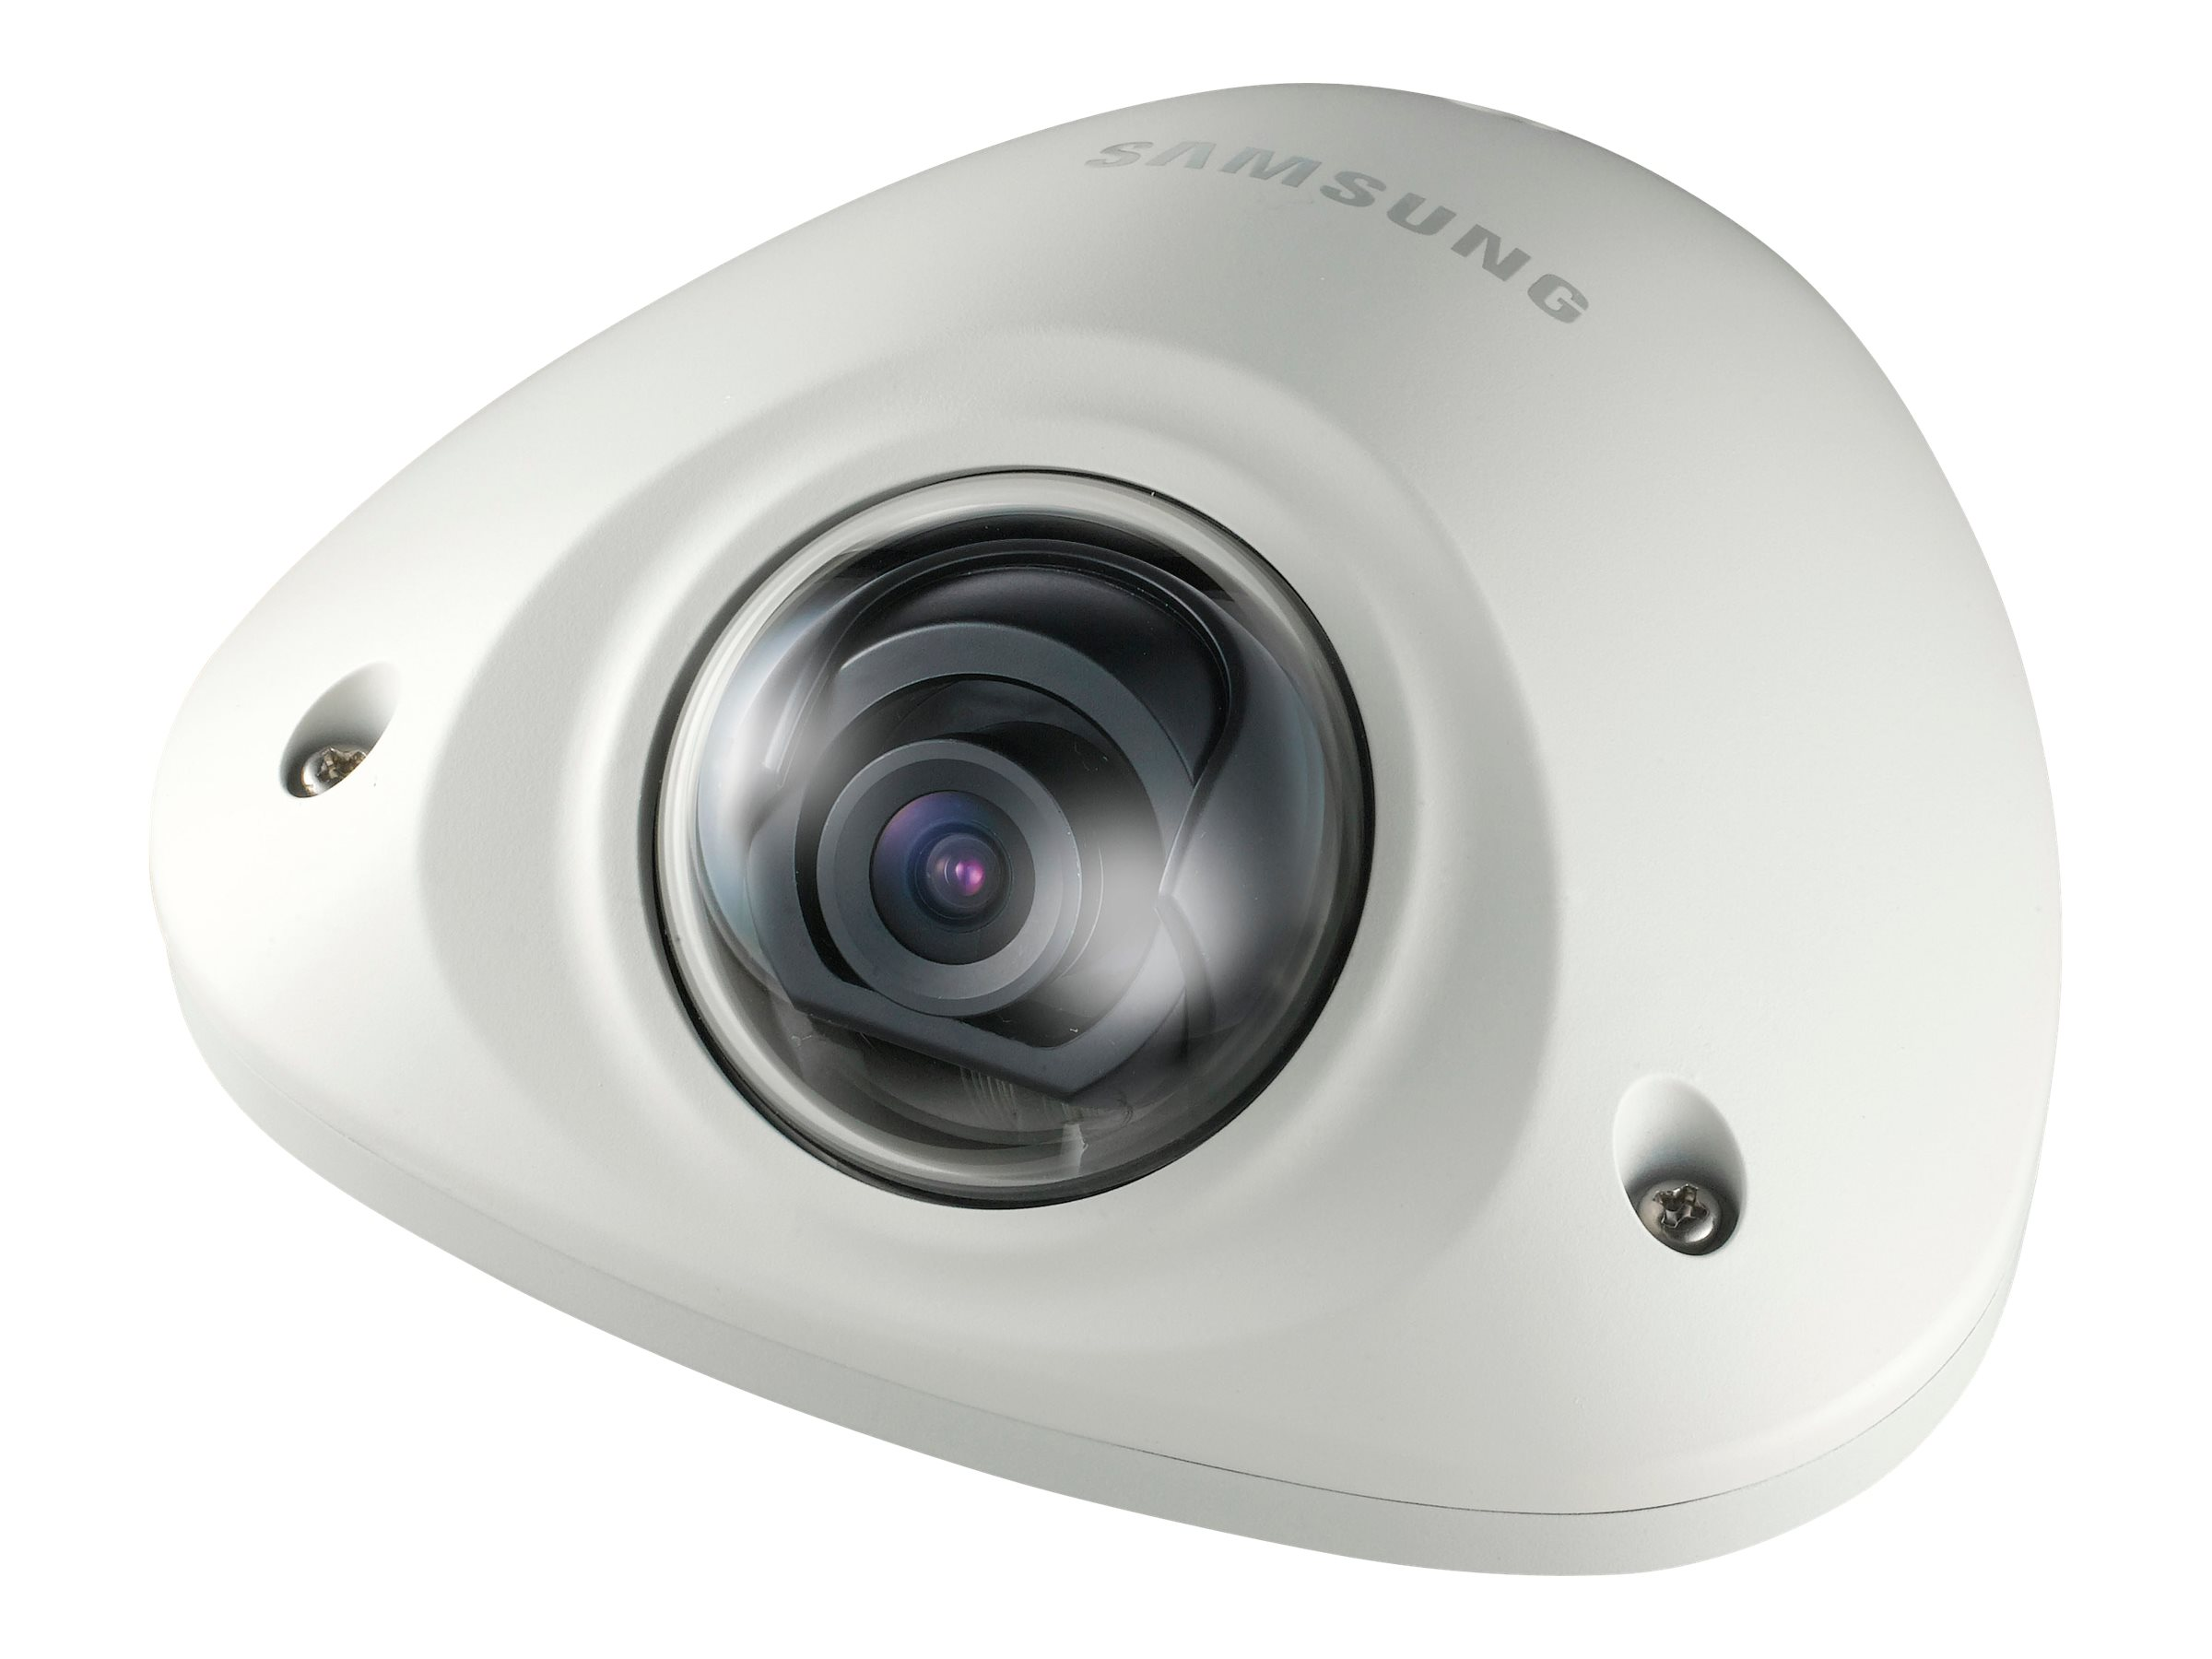 Samsung 2MP 1080p Full HD Vandal-Resistant Network Mobile Flat Camera